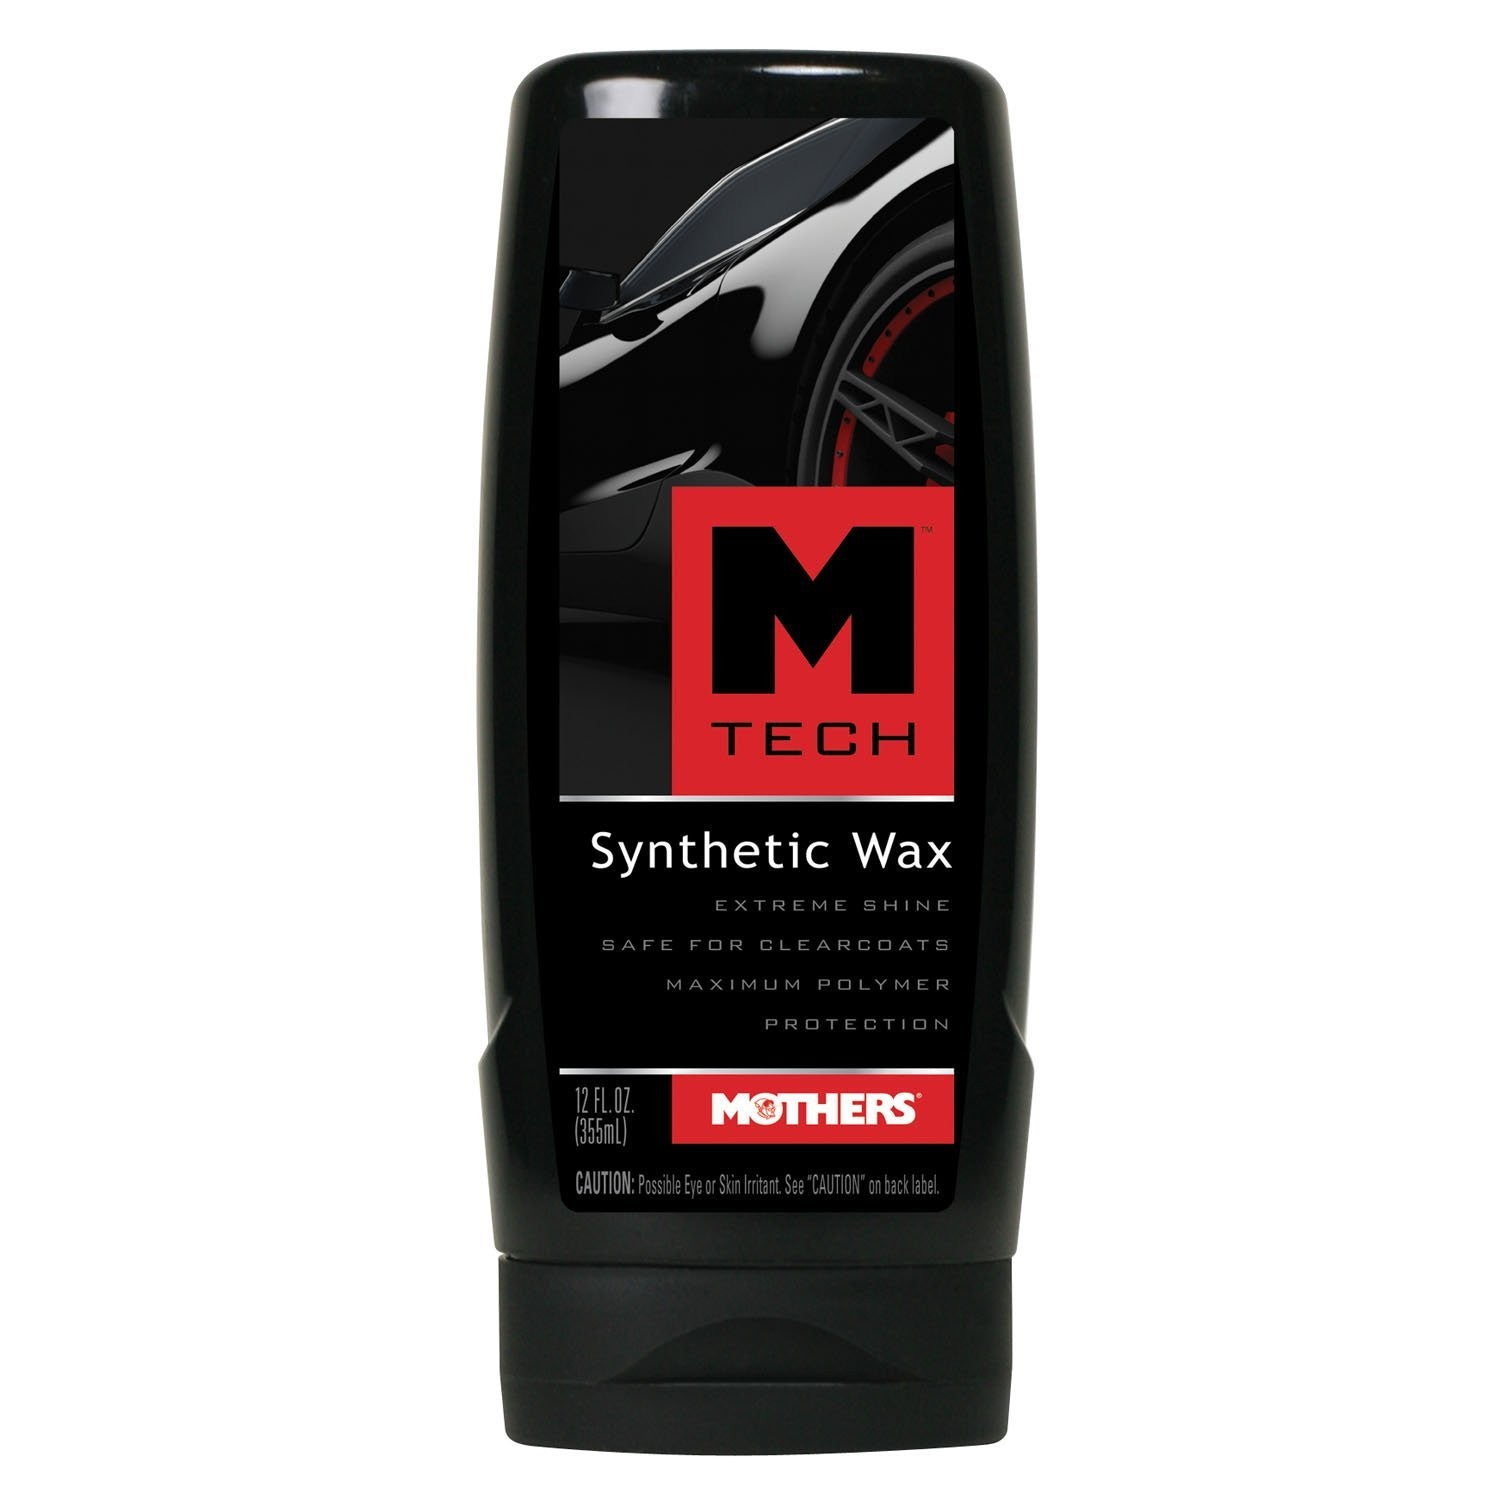 MOTHERS M-Tech Synthetic Wax 12 OZ